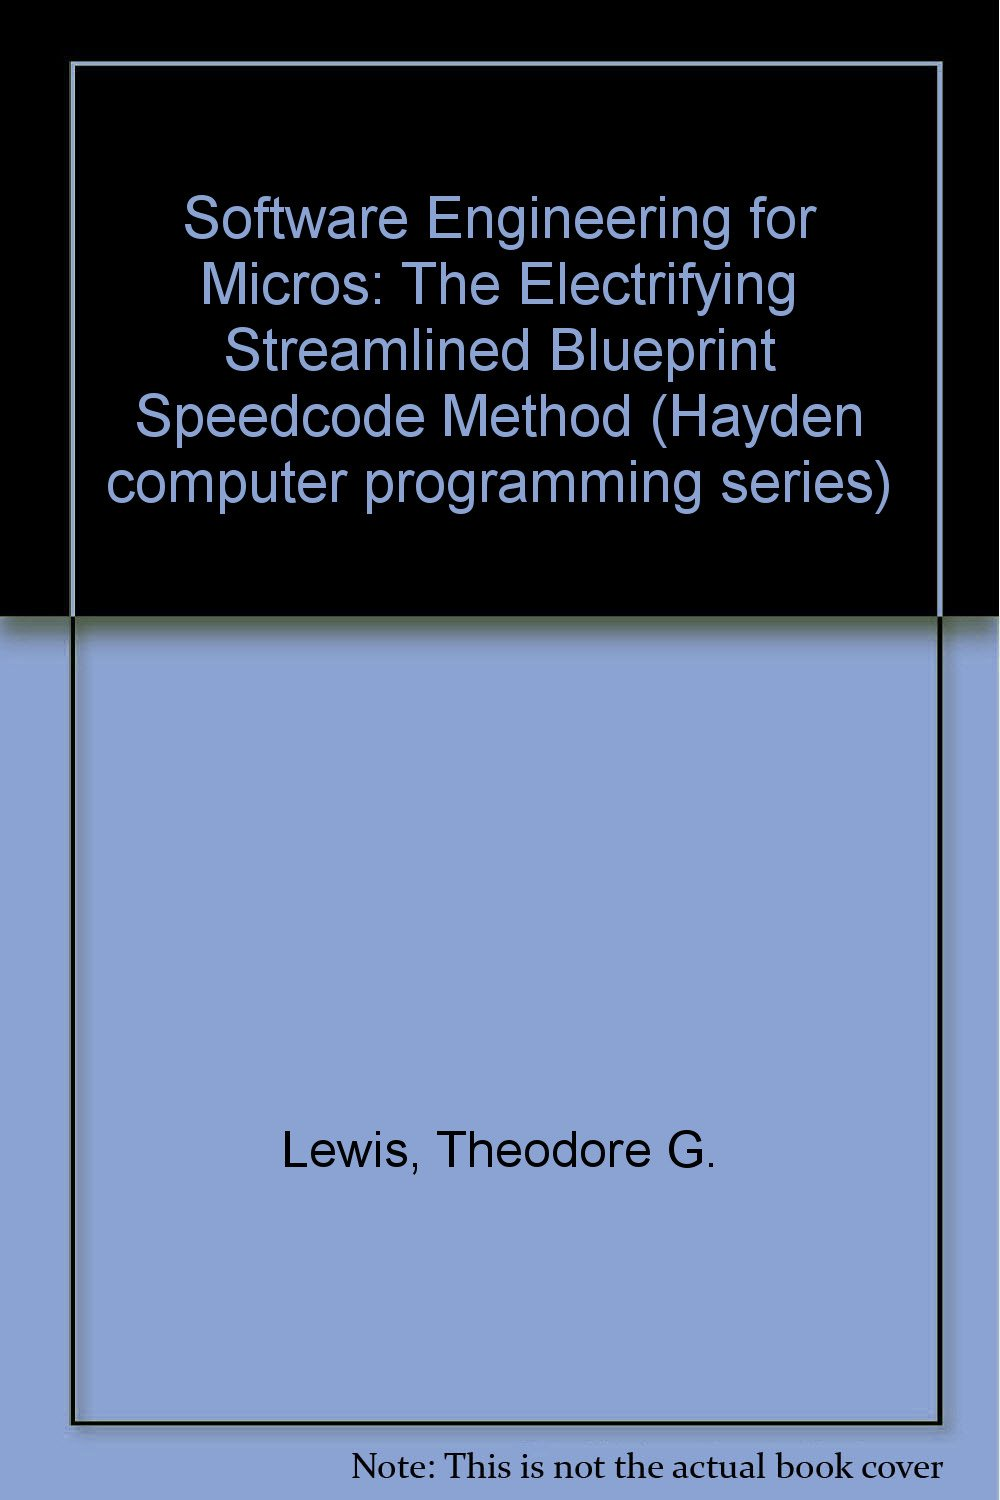 Software engineering for micros the electrifying streamlined software engineering for micros the electrifying streamlined blueprint speedcode method hayden computer programming series theodore g lewis malvernweather Gallery